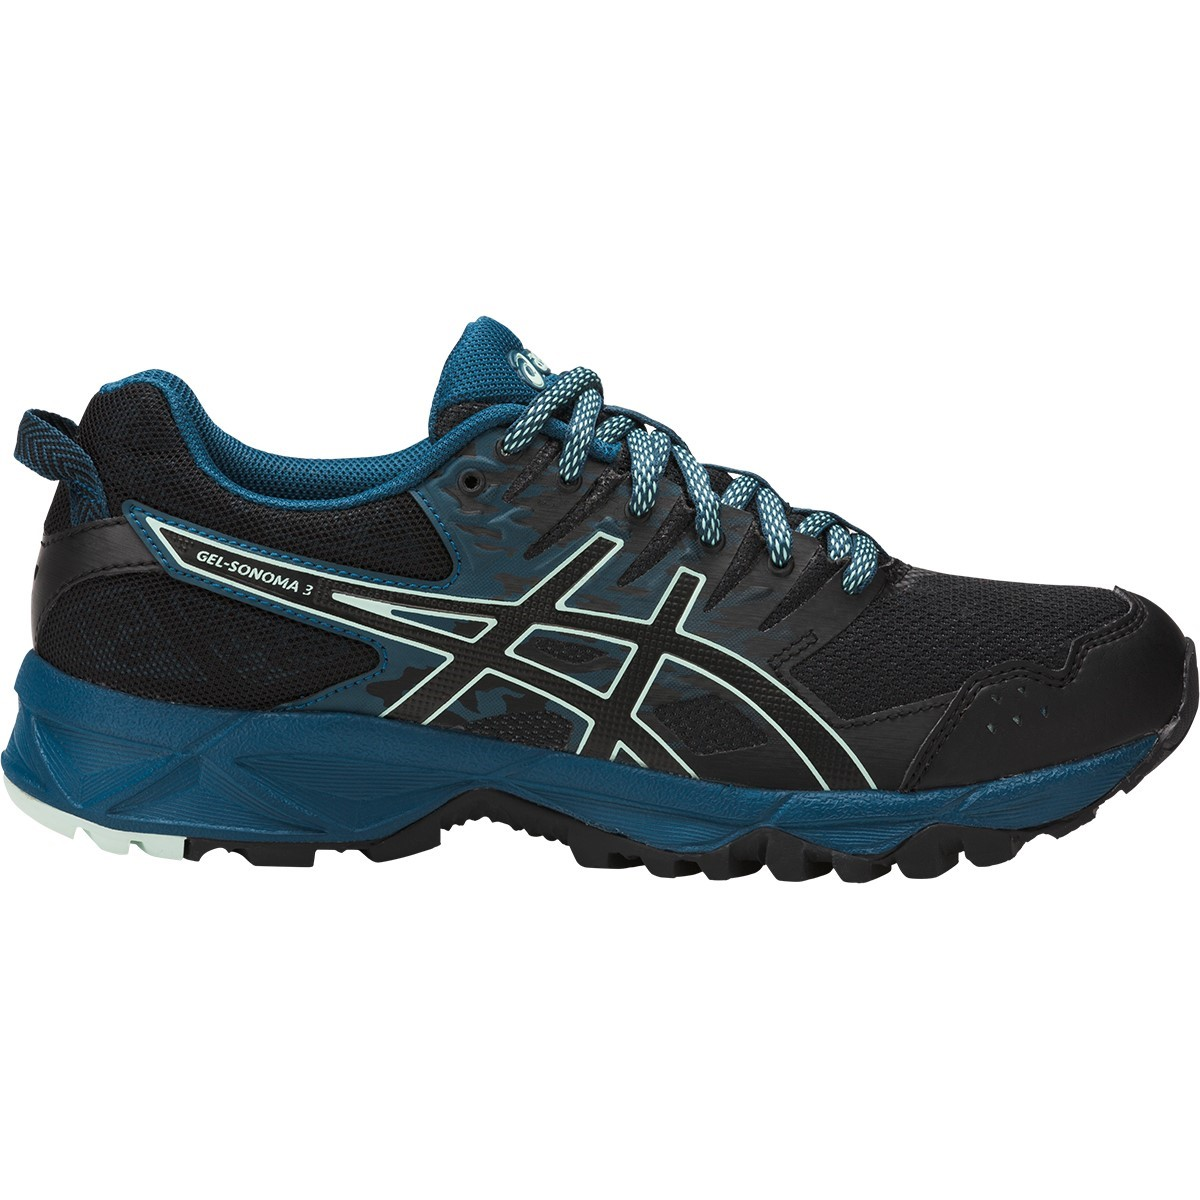 Womens Black Asics Trail Running Shoes